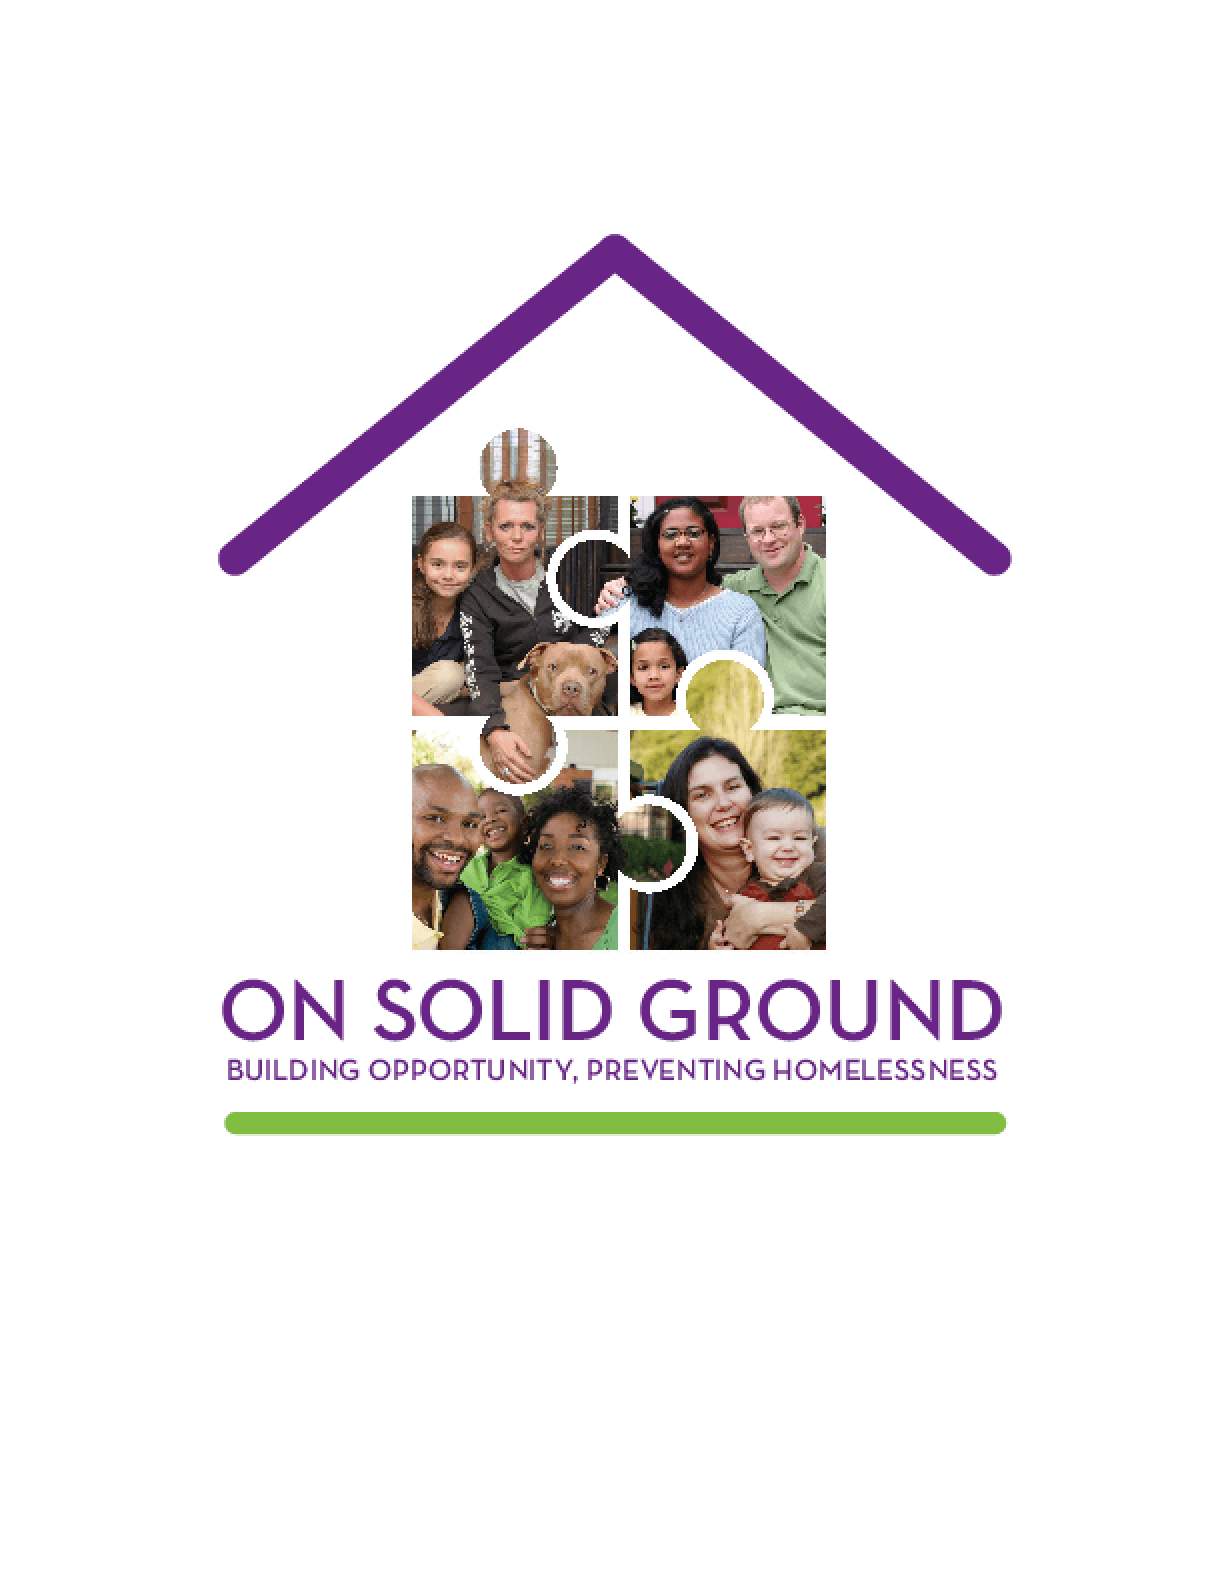 On Solid Ground: Building Opportunity, Preventing Homelessness